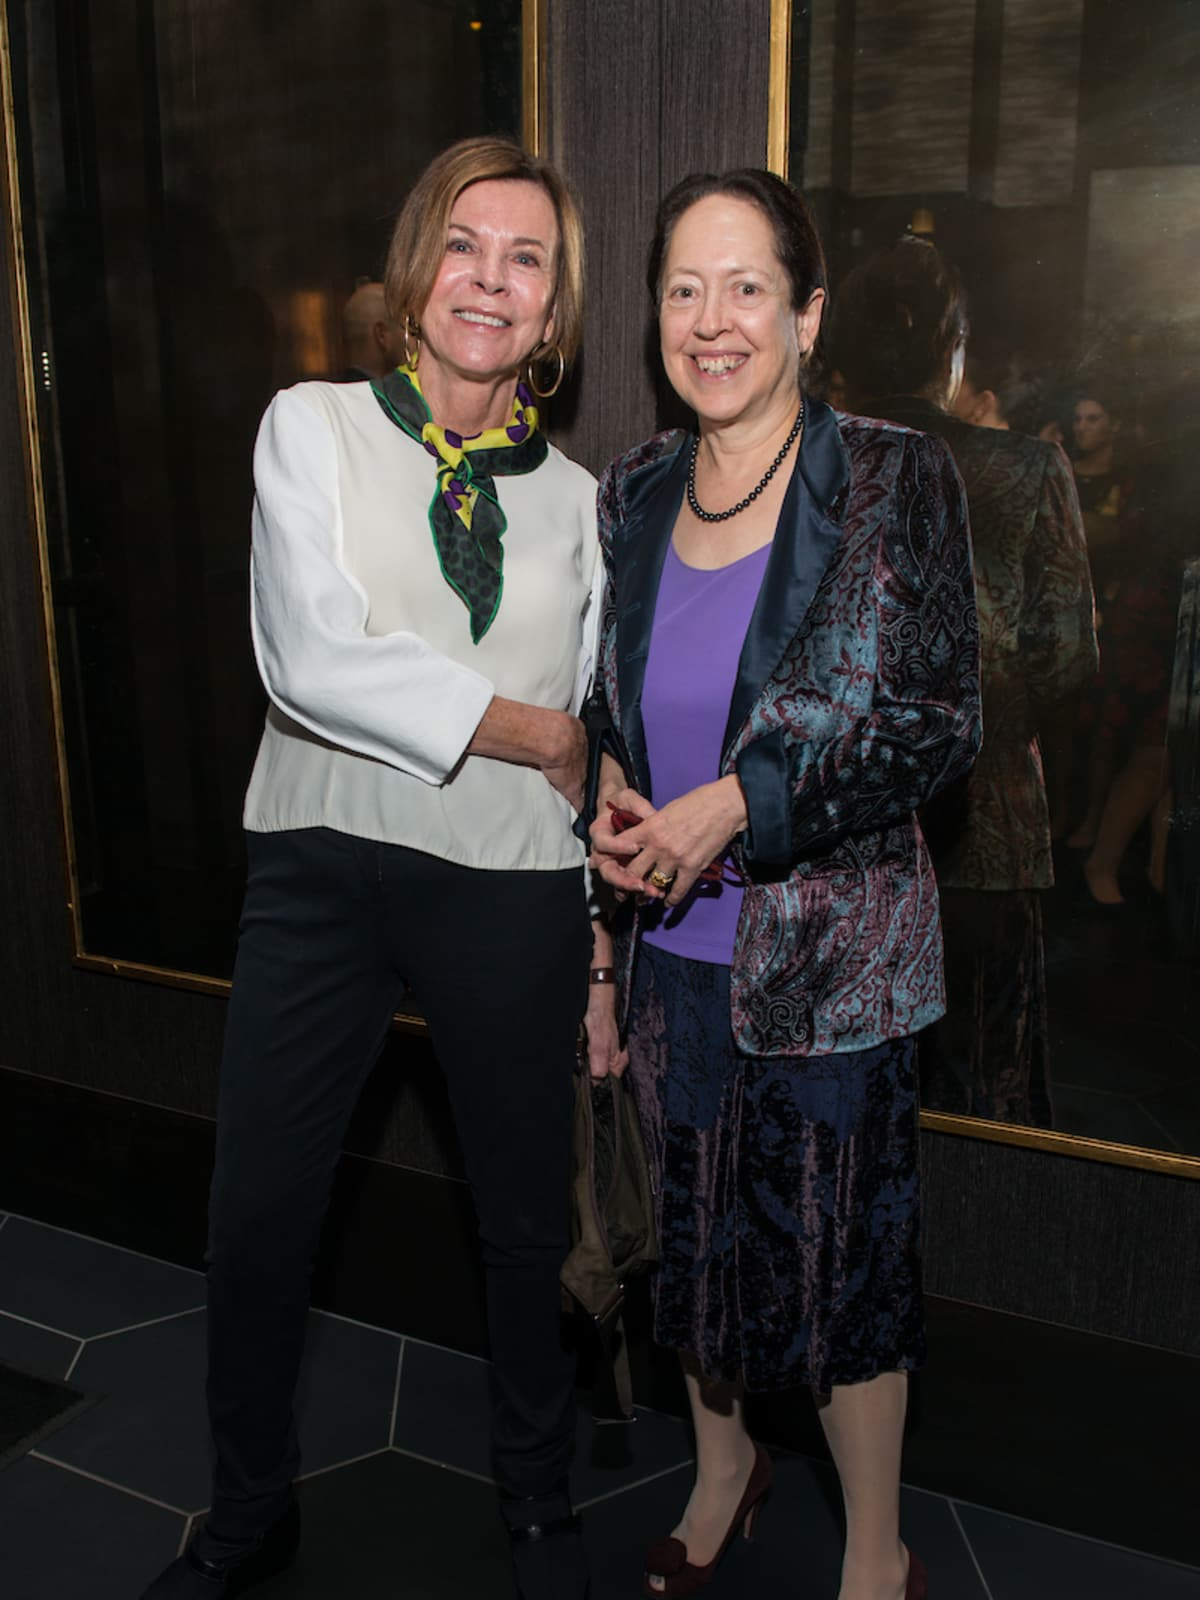 Dr Susan Landy and Dean Barbara Stoll